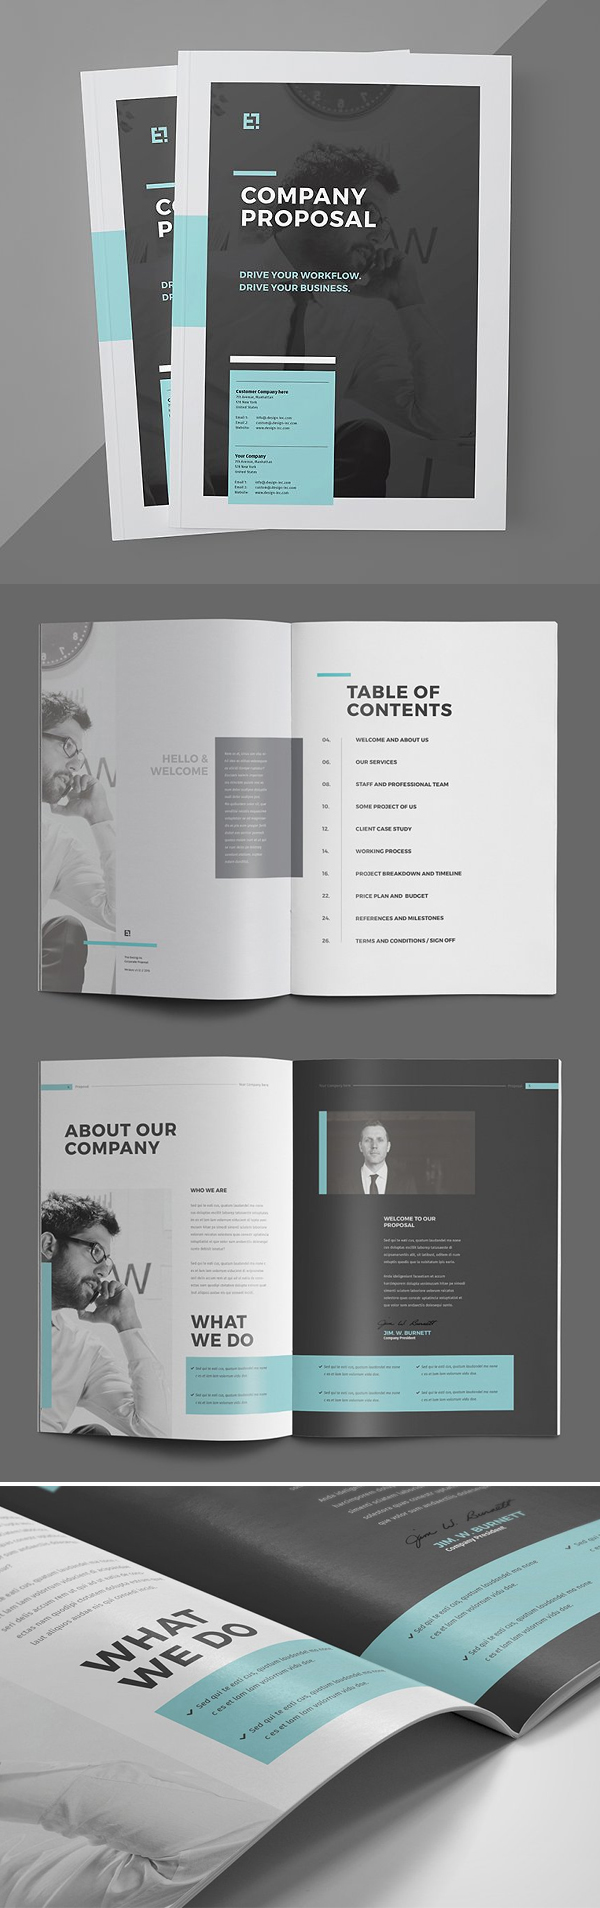 Elegant Proposal Brochure